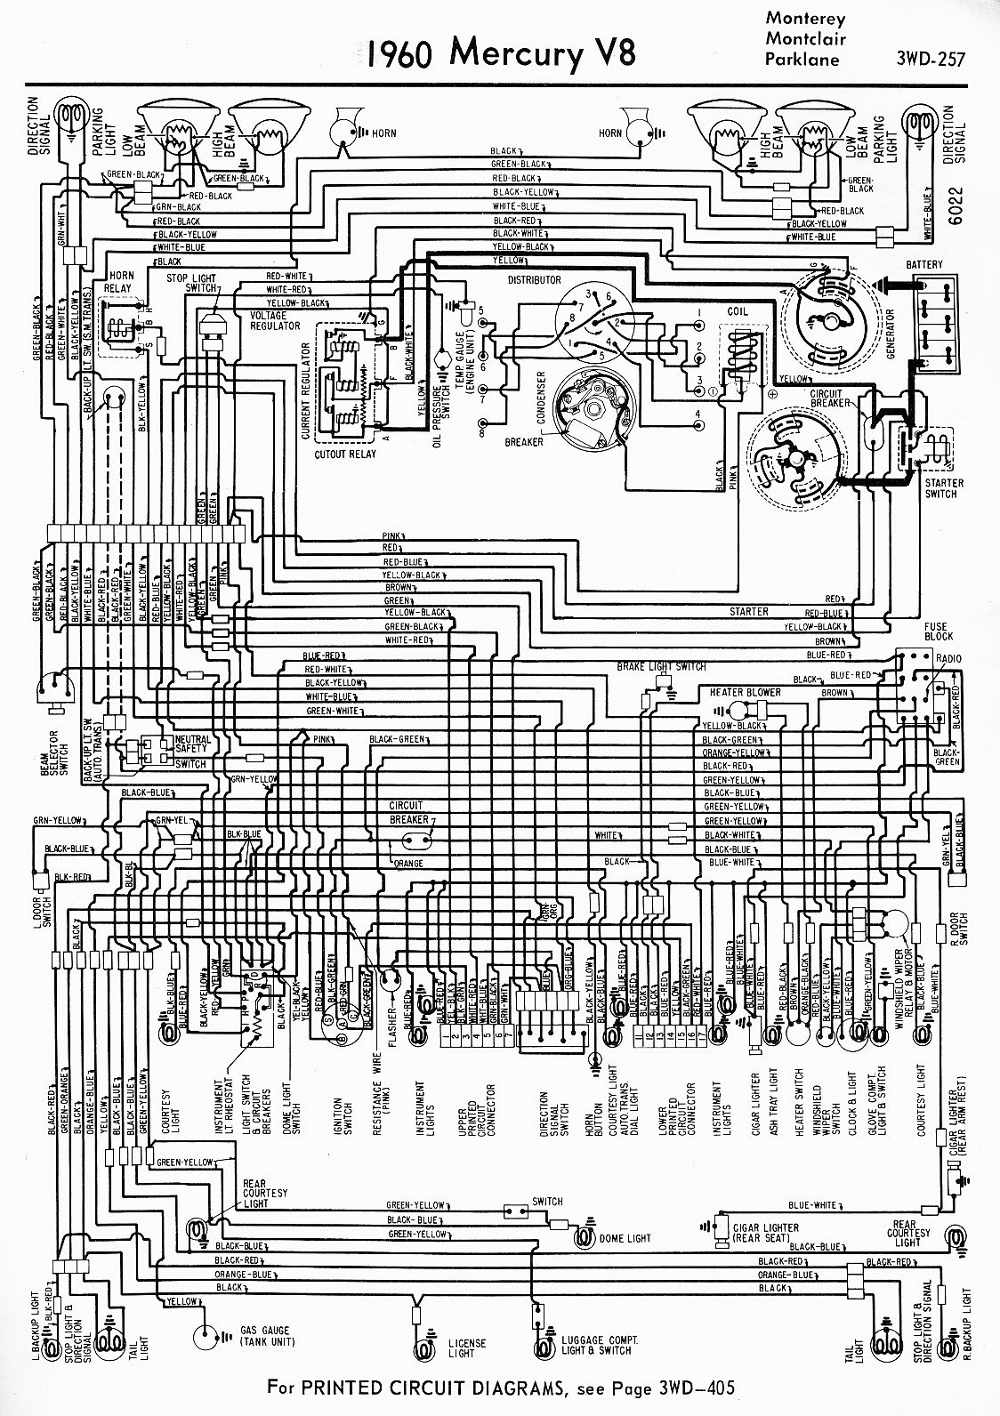 1966 Mercury Wiring Diagram Data 1957 Cadillac 1954 Monterey Diagrams Source Charging System